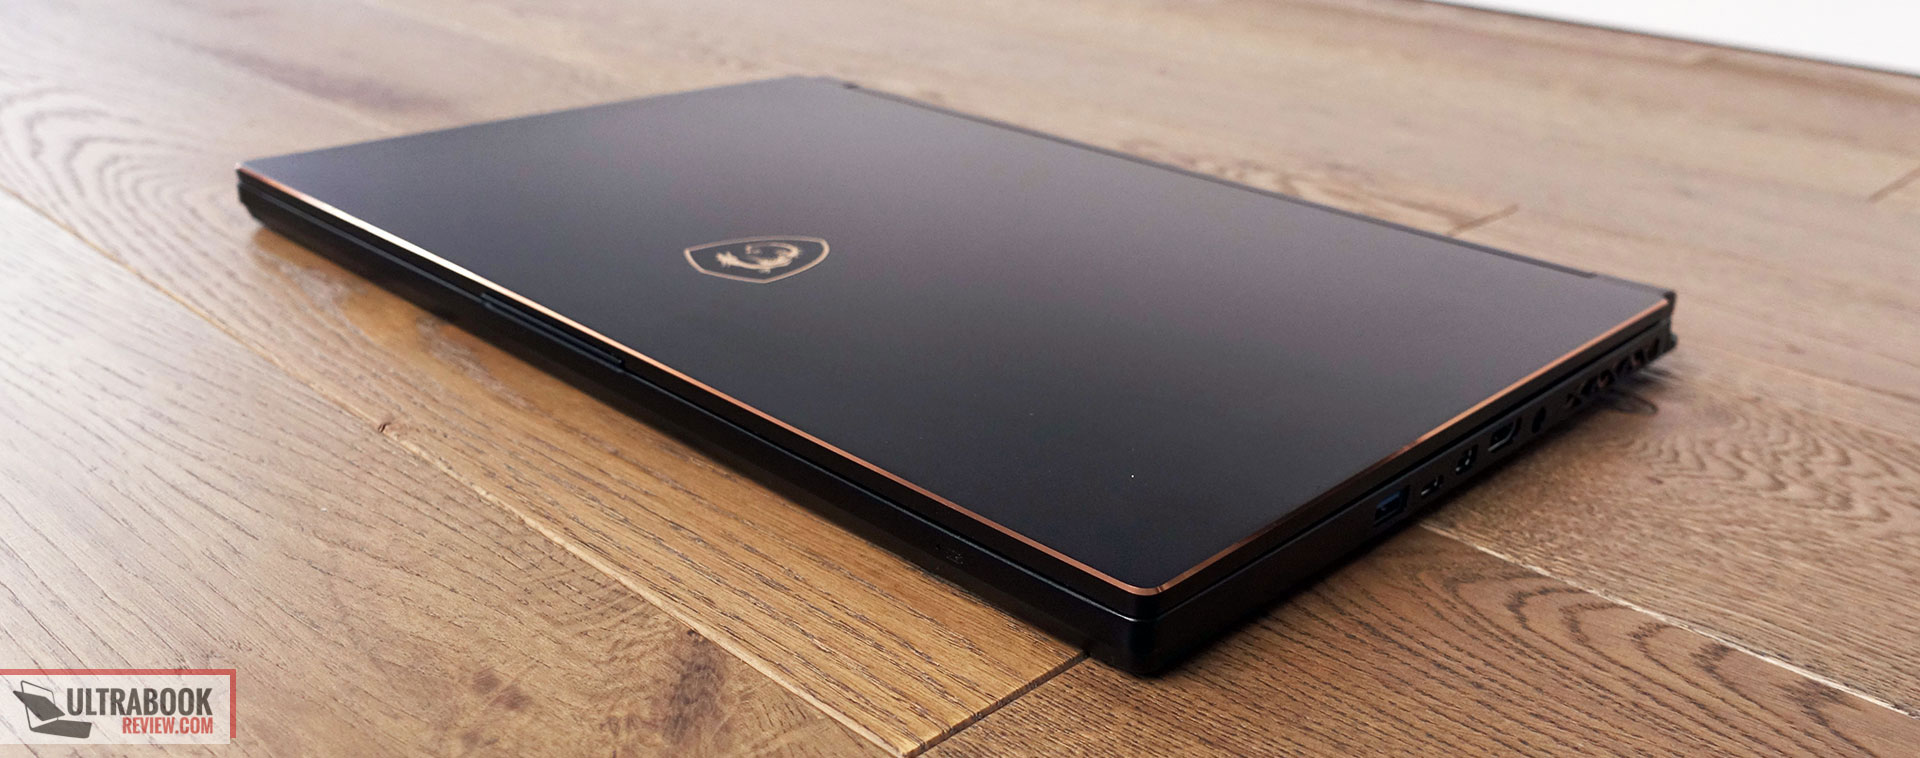 MSI GS65 Stealth Thin 8SG review (2019 model - Phoneweek